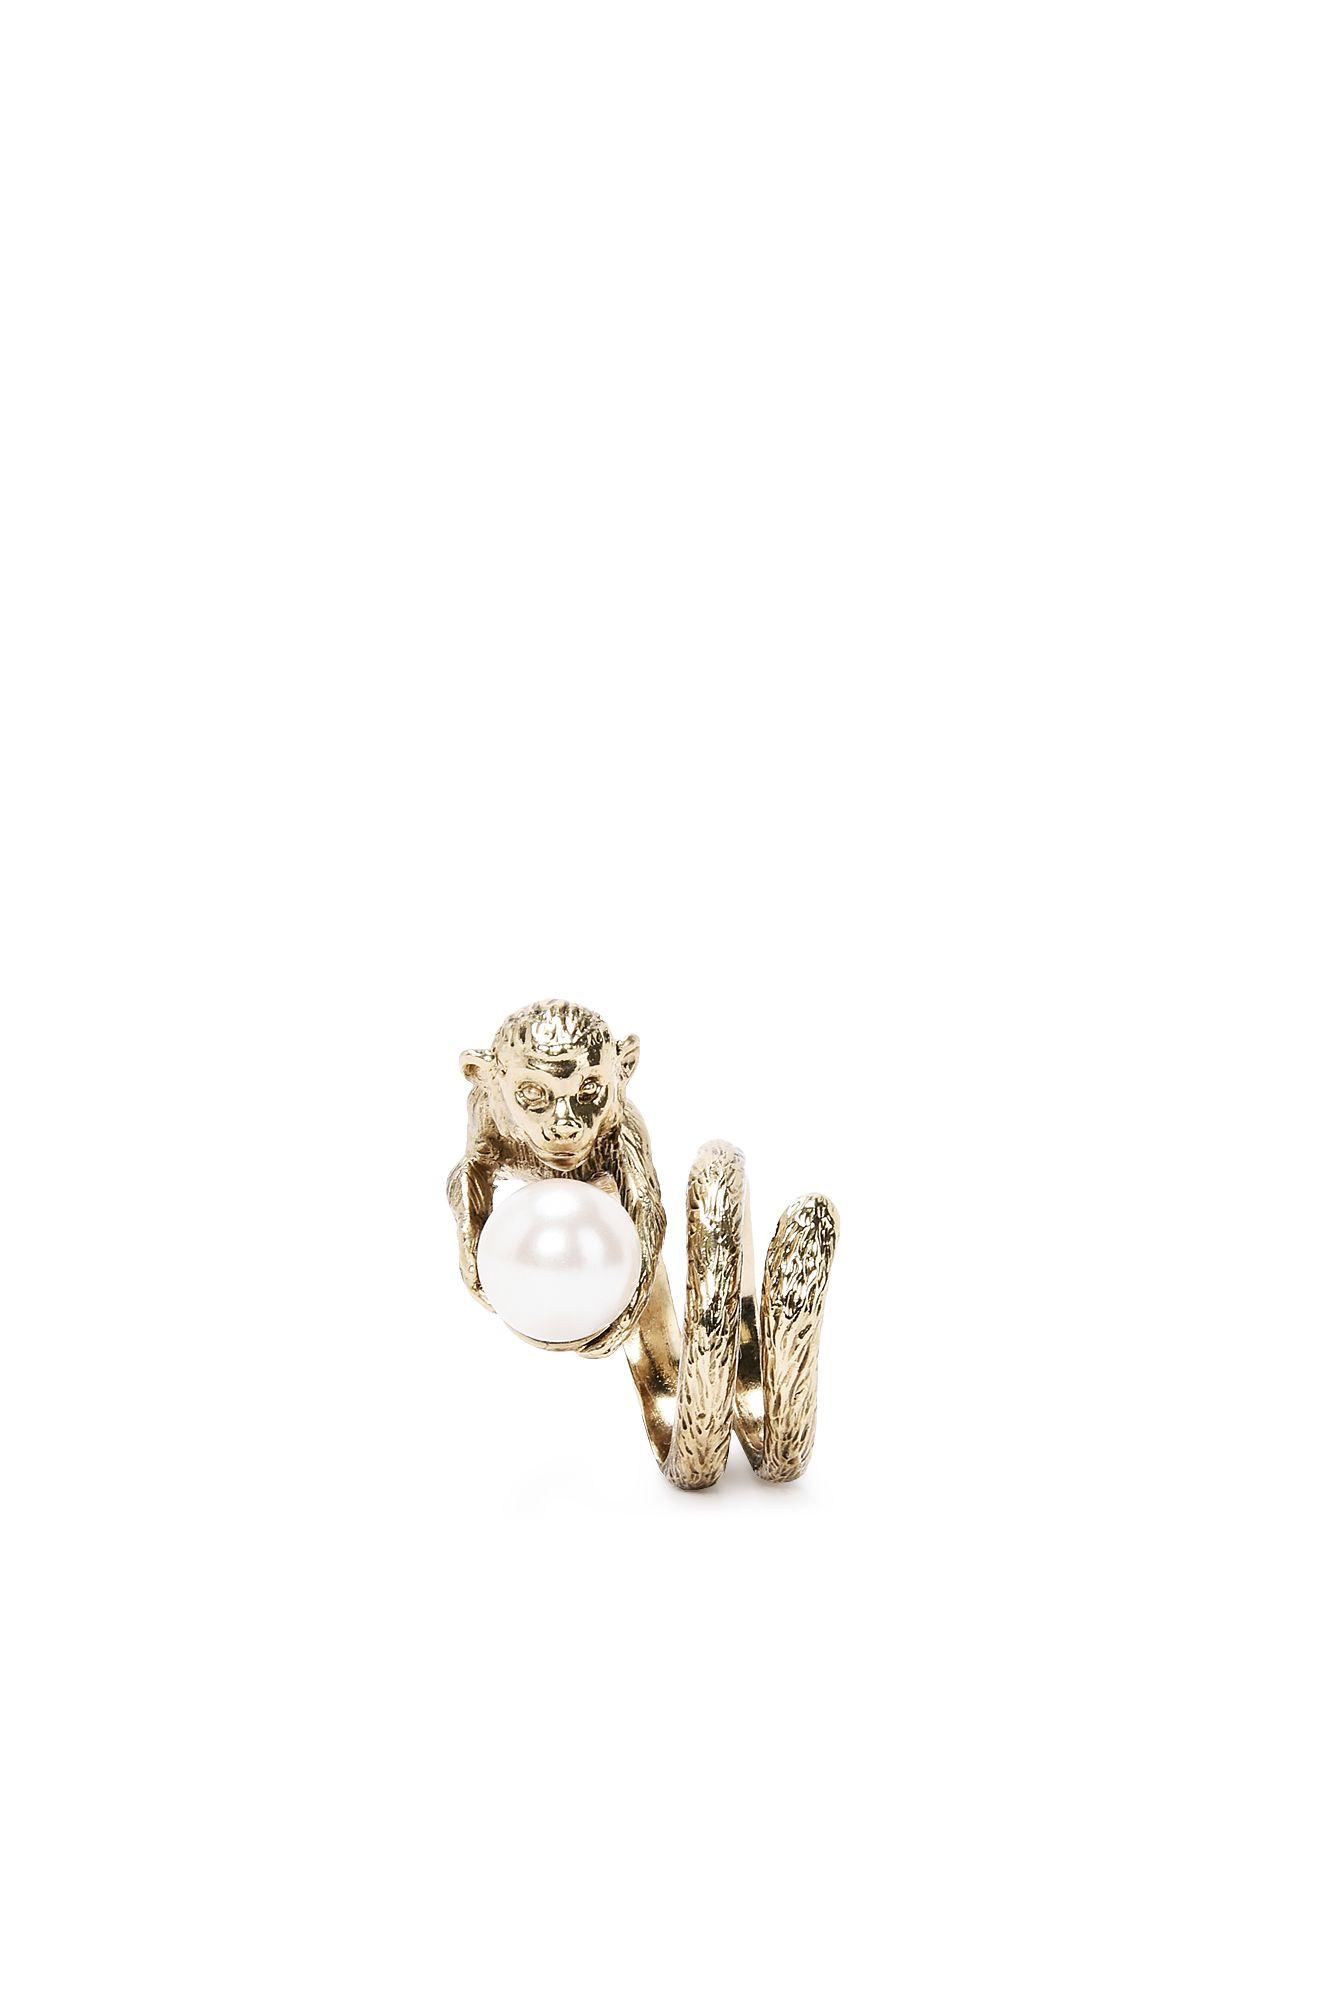 Stylised monkey and pearl ring.